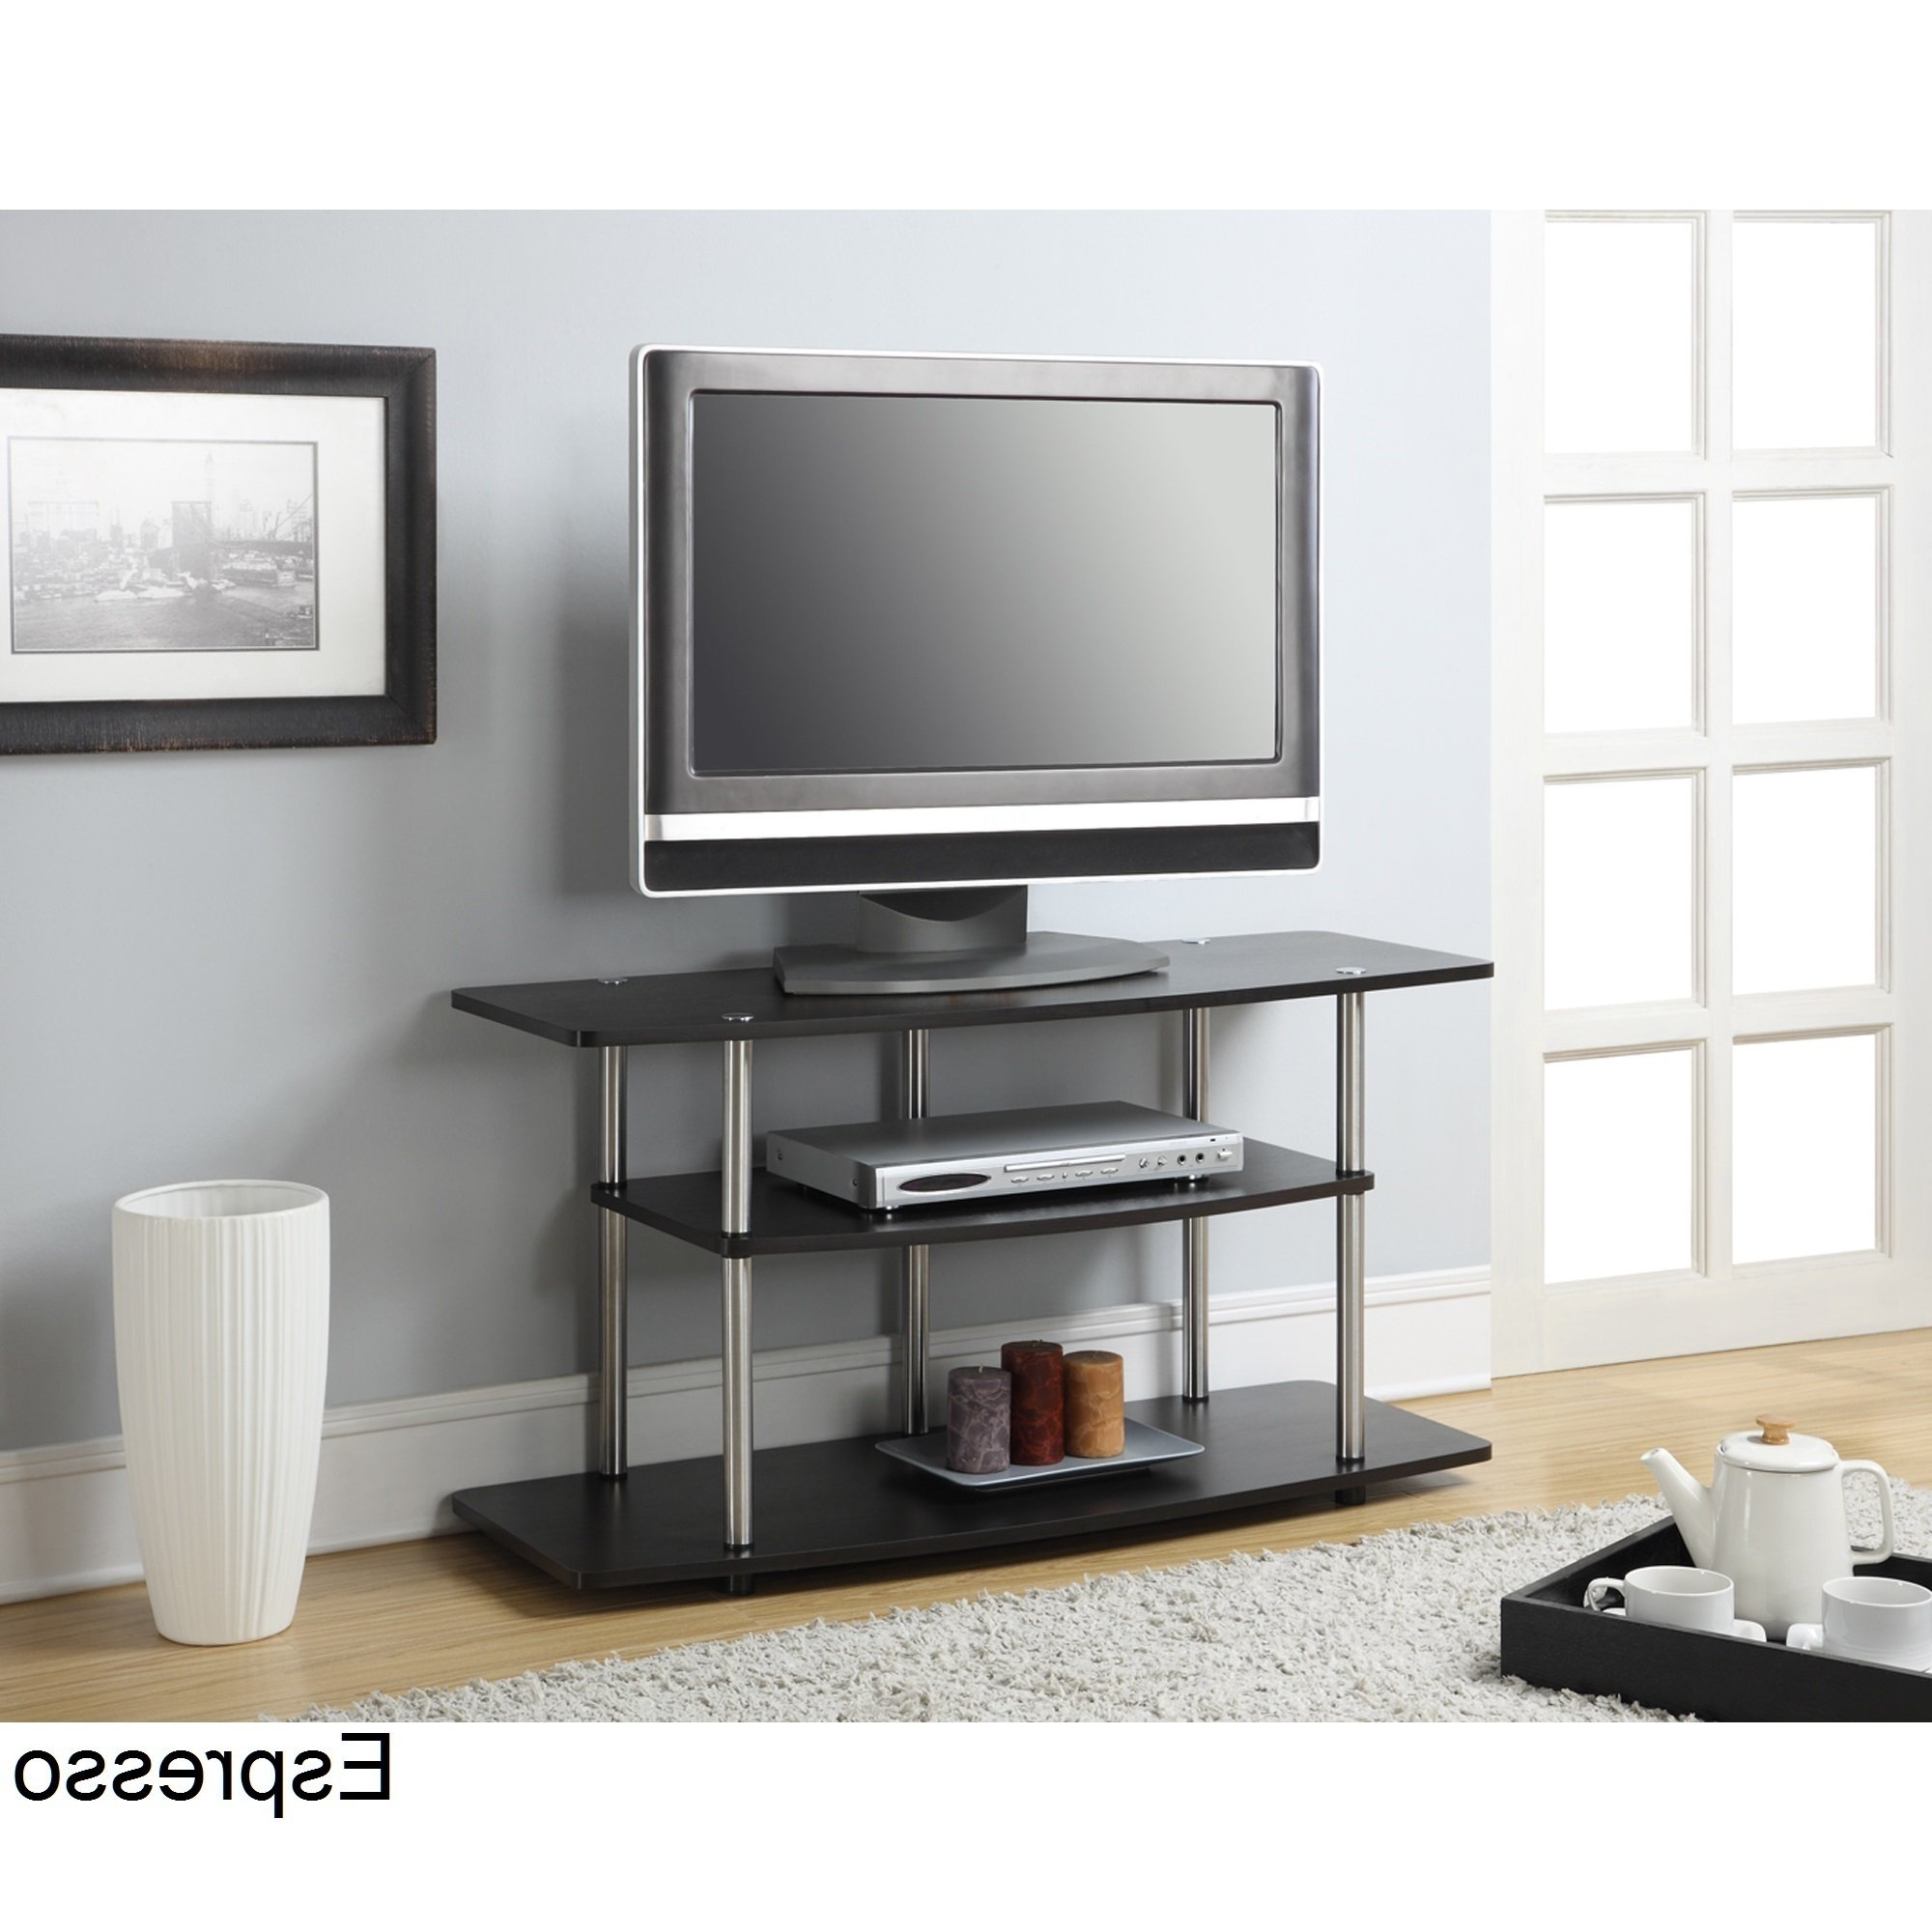 3 Tv Stands & Entertainment Centers For Less | Overstock Intended For Rowan 45 Inch Tv Stands (View 4 of 20)